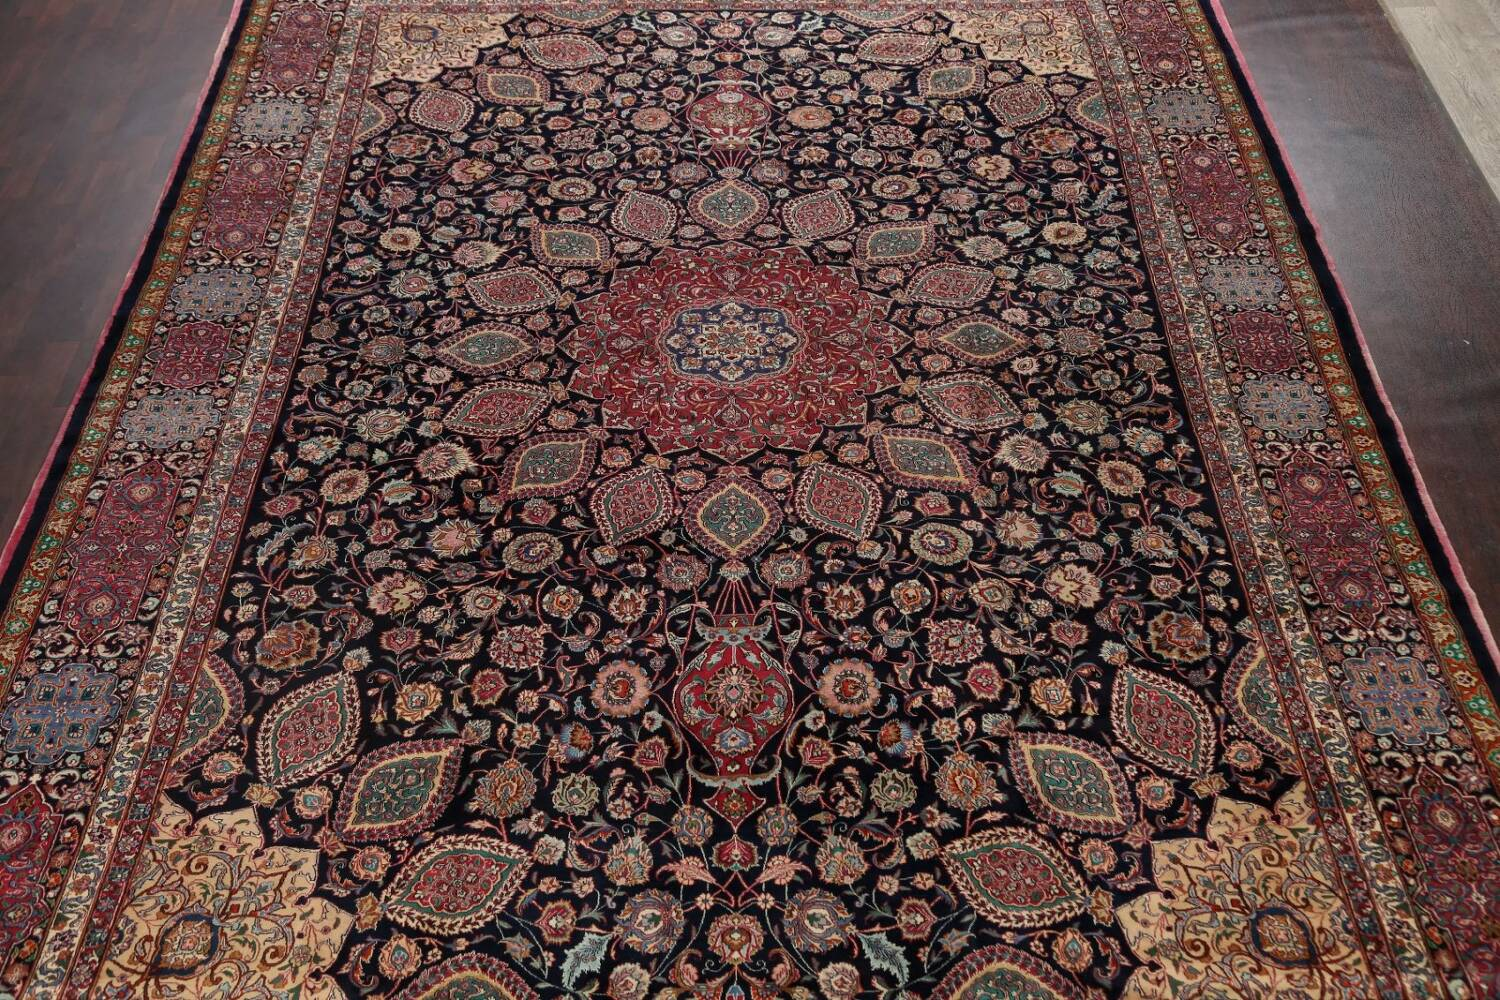 Large Floral Mashad Persian Area Rug 11x15 image 3